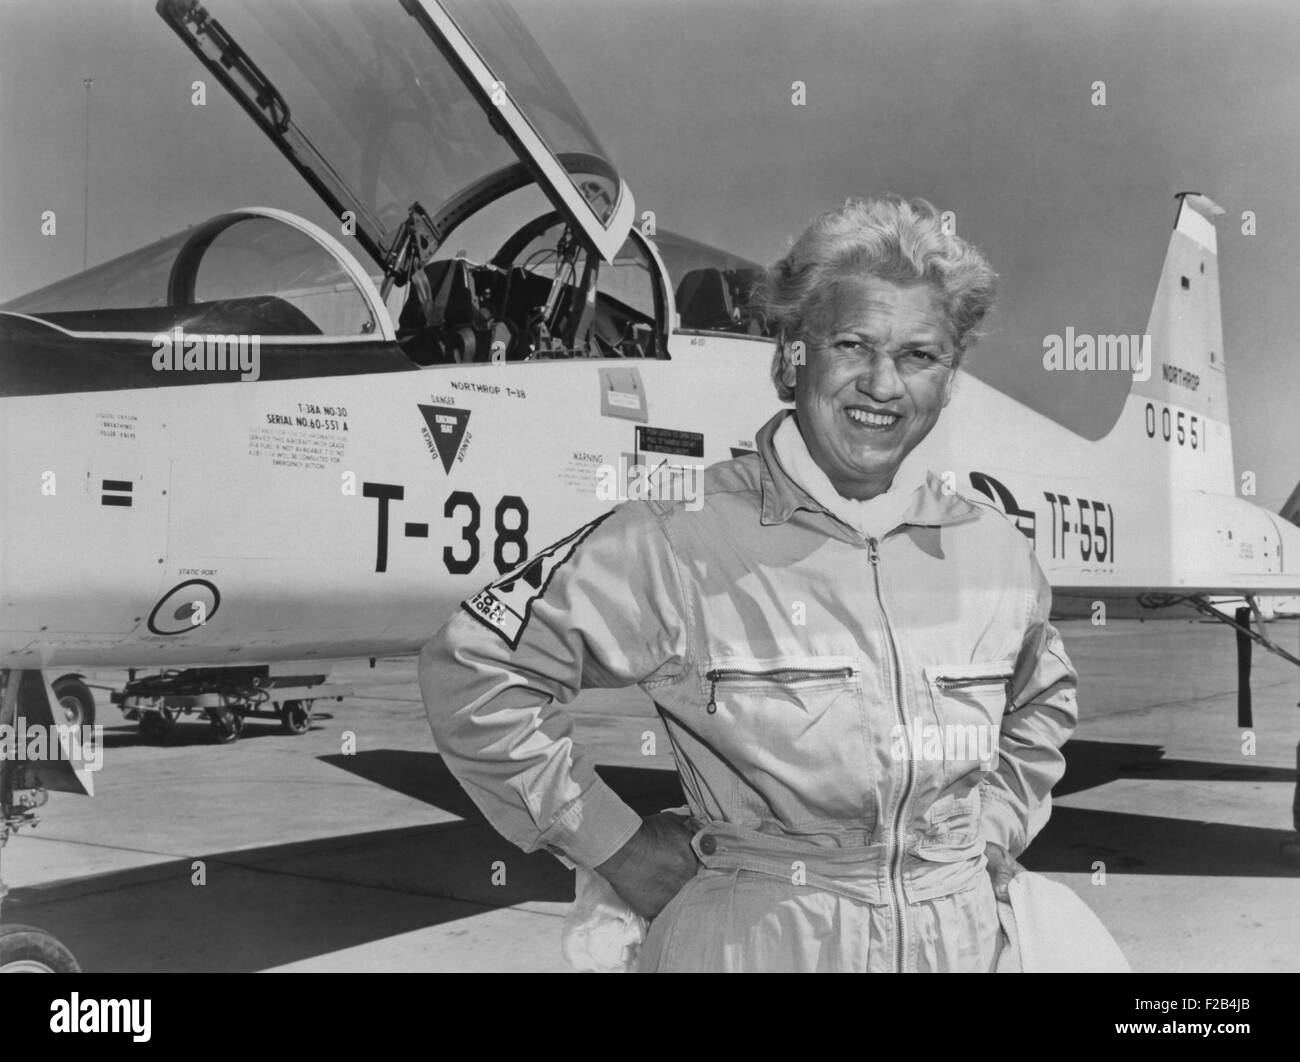 Jacqueline Cochran was the first woman pilot to break the